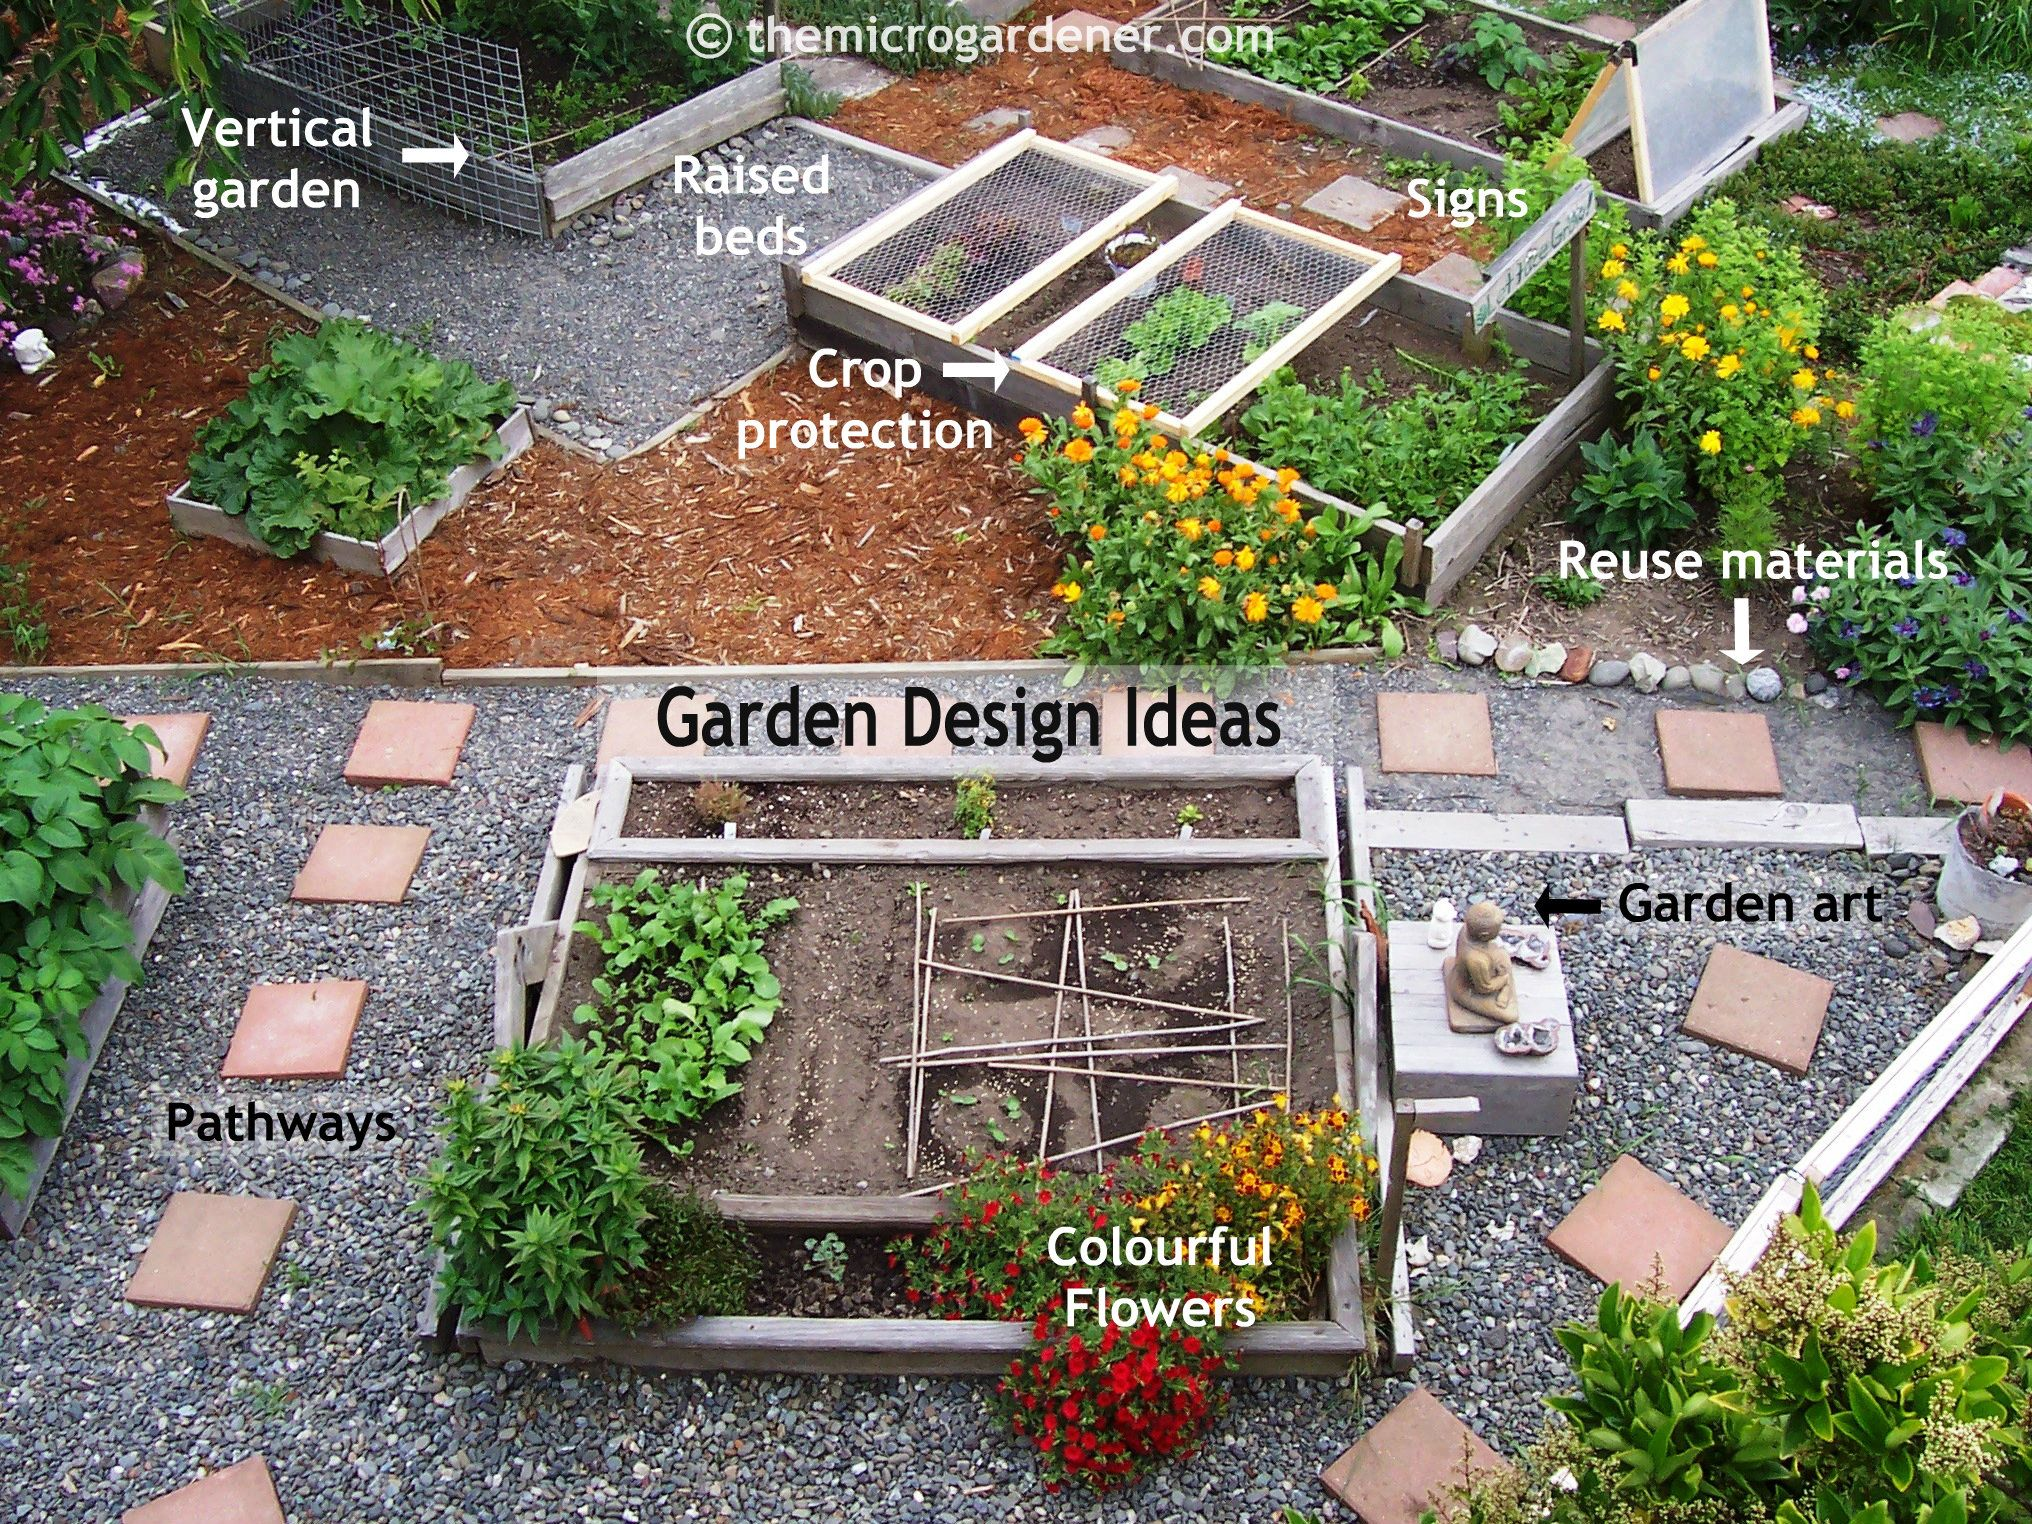 Small garden design ideas on pinterest vertical gardens for Small home garden decoration ideas